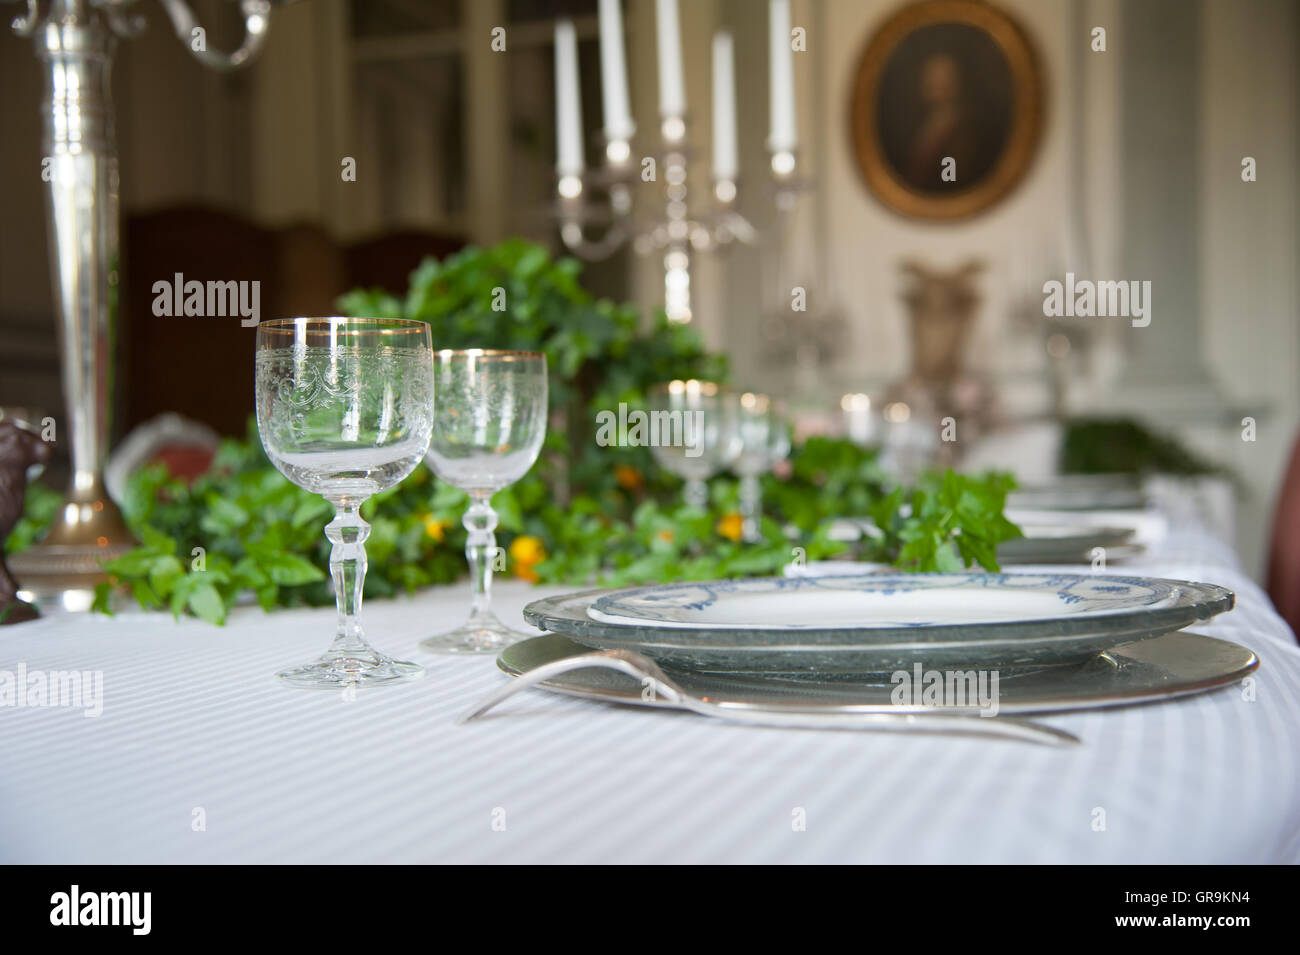 Historically Laid Table In A Dining Room - Stock Image